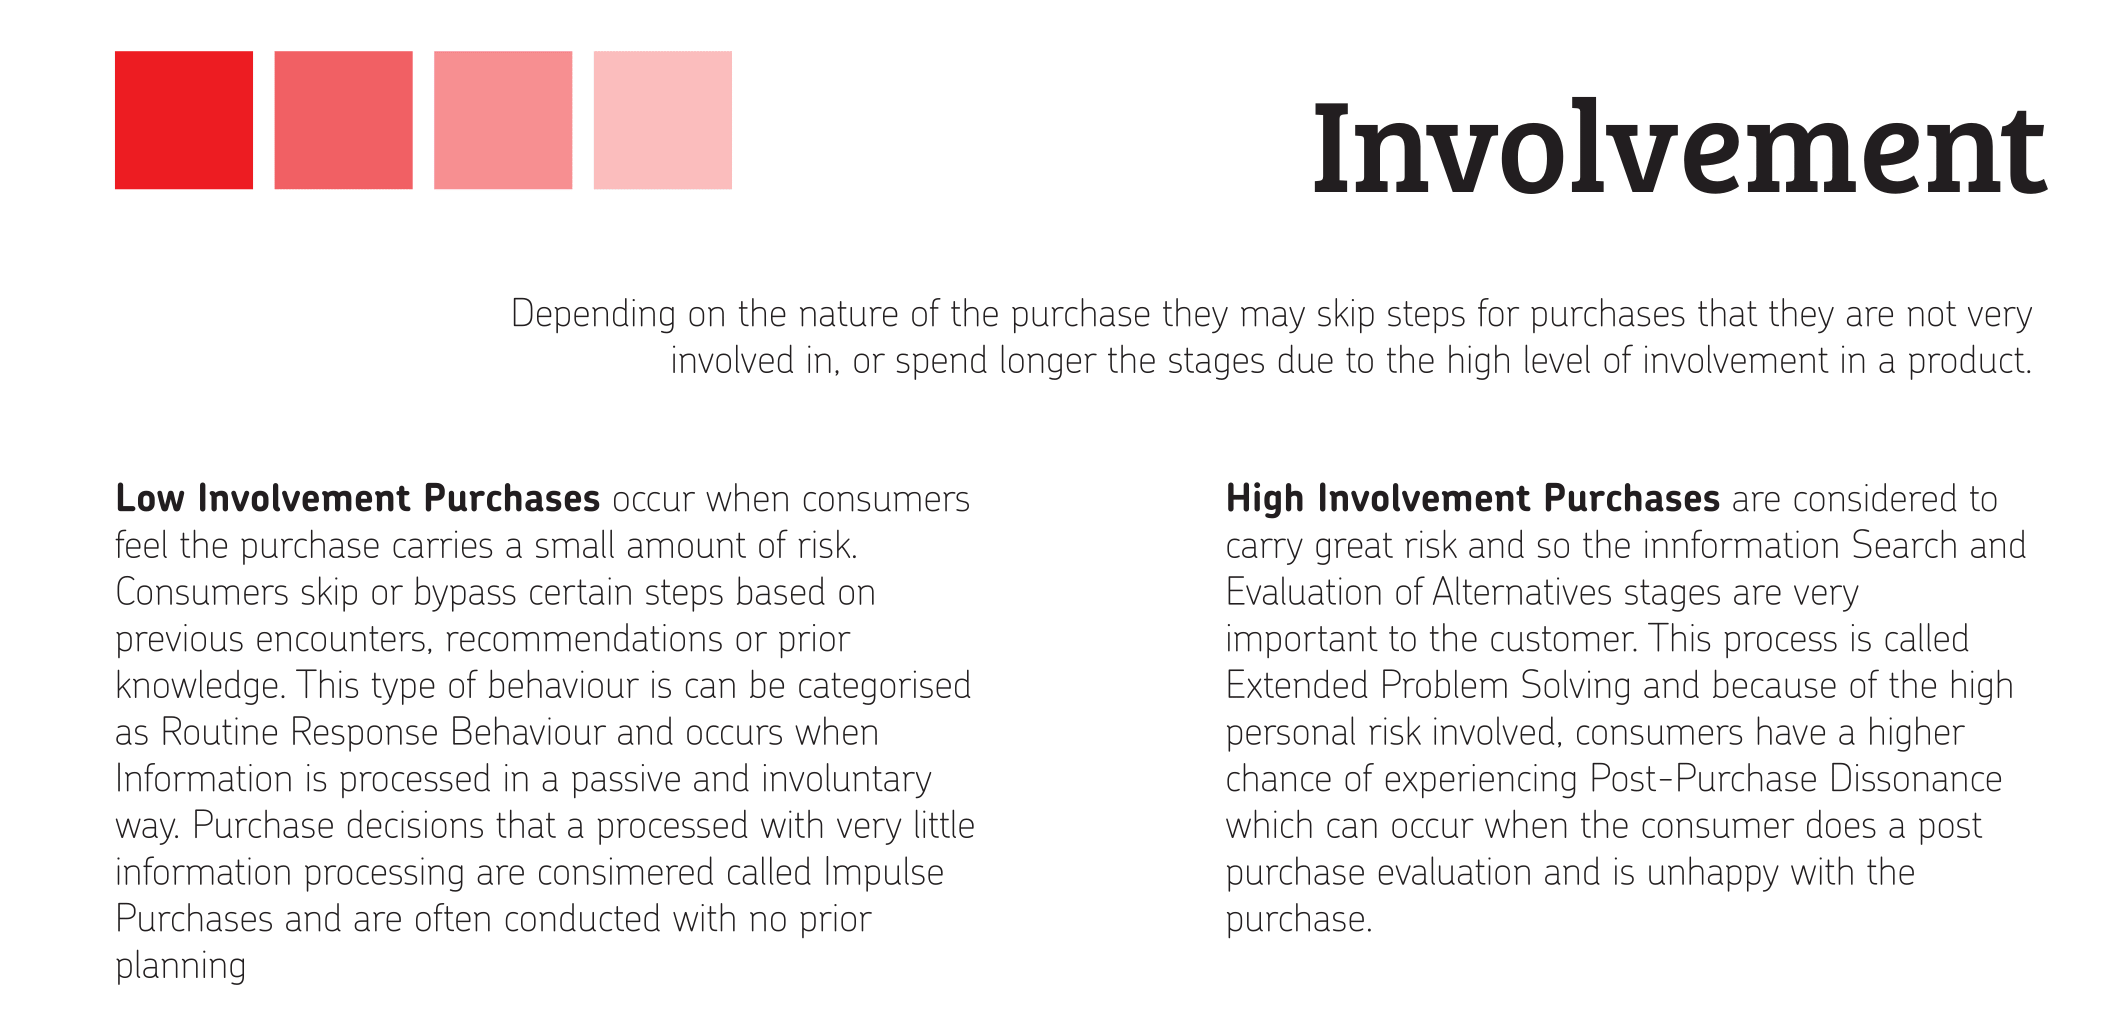 a conjoint analysis in high involvement purchase decision It promotes and reinforces the purchase decision not only at the point of purchase, but also every time the product is used packaging in different serving sizes can extend a product into new target markets or help to overcome cost barriers.